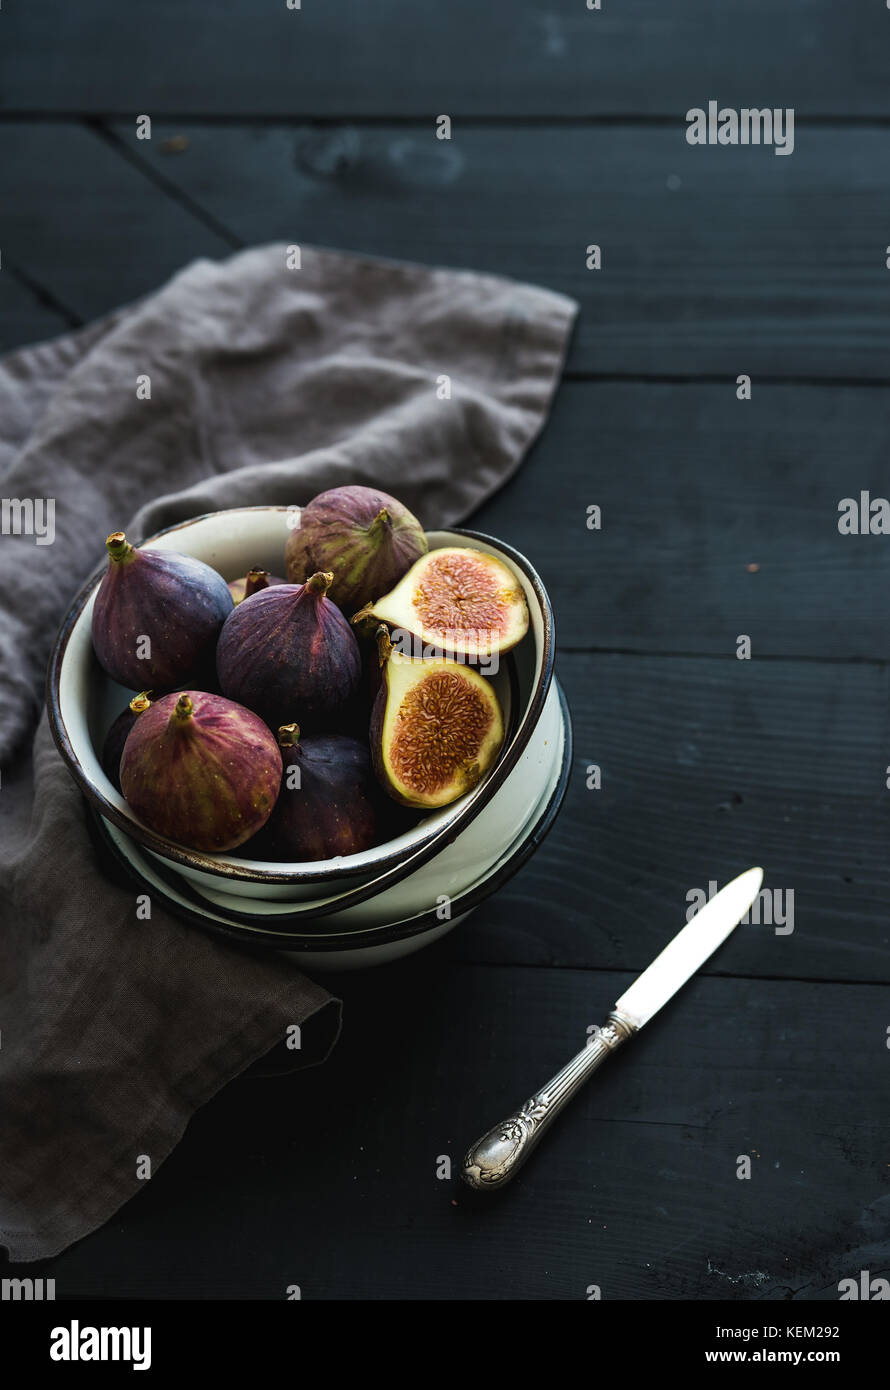 Rustic metal bowl of fresh figs on dark background, top view, selective focus - Stock Image